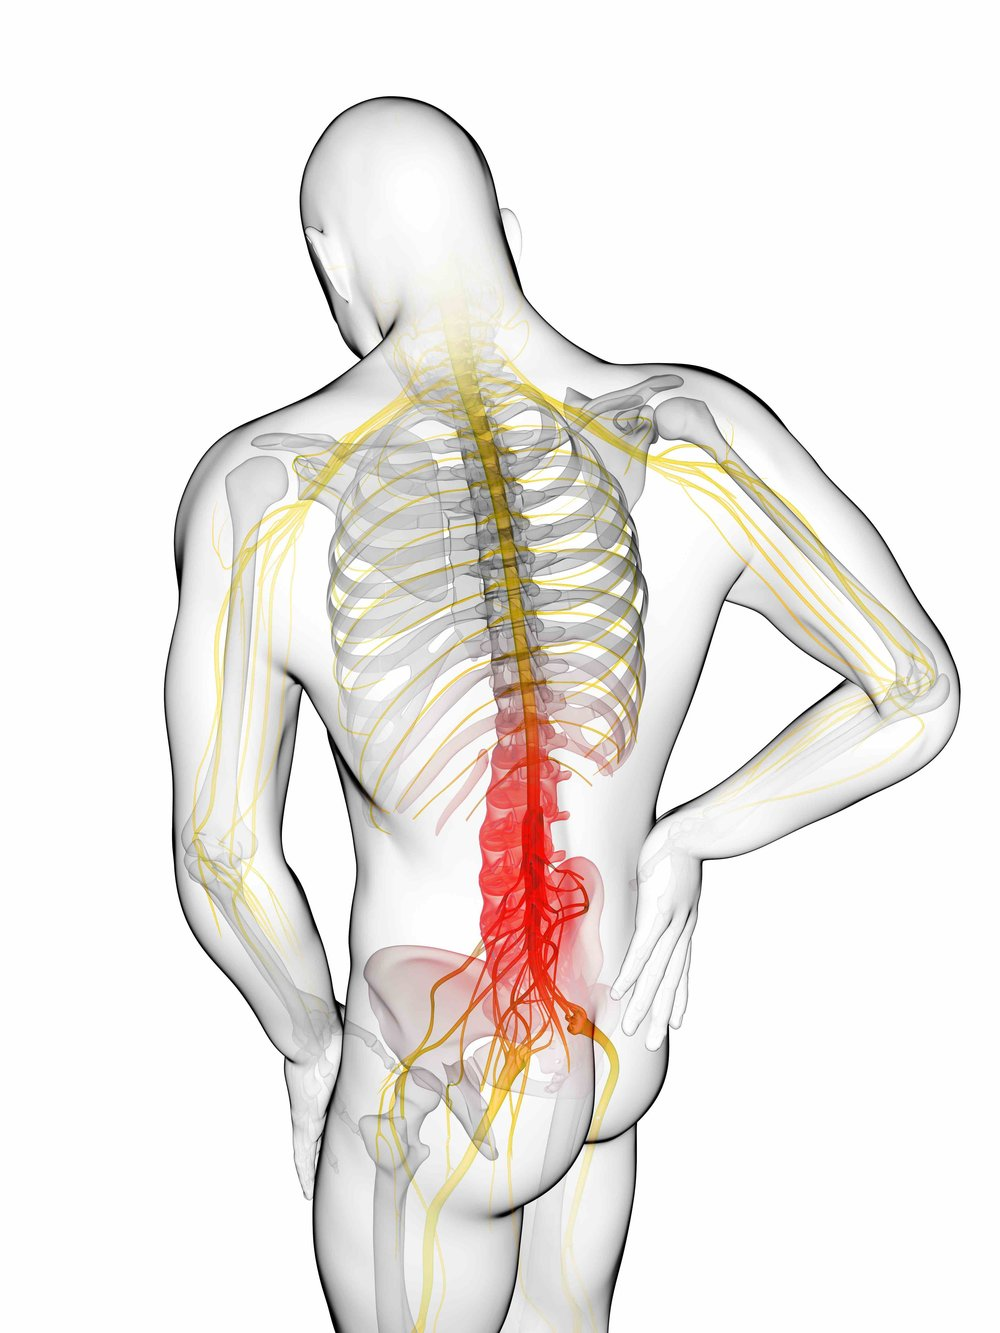 - Sciatica is a set of symptoms including pain caused by general compression or irritation of one of five spinal nerve roots (L4 to S3) of sciatic nerve.Symptoms include: - Lower back pain- Buttock pain, and numbness- Pain or weakness in various parts of the leg and foot.-